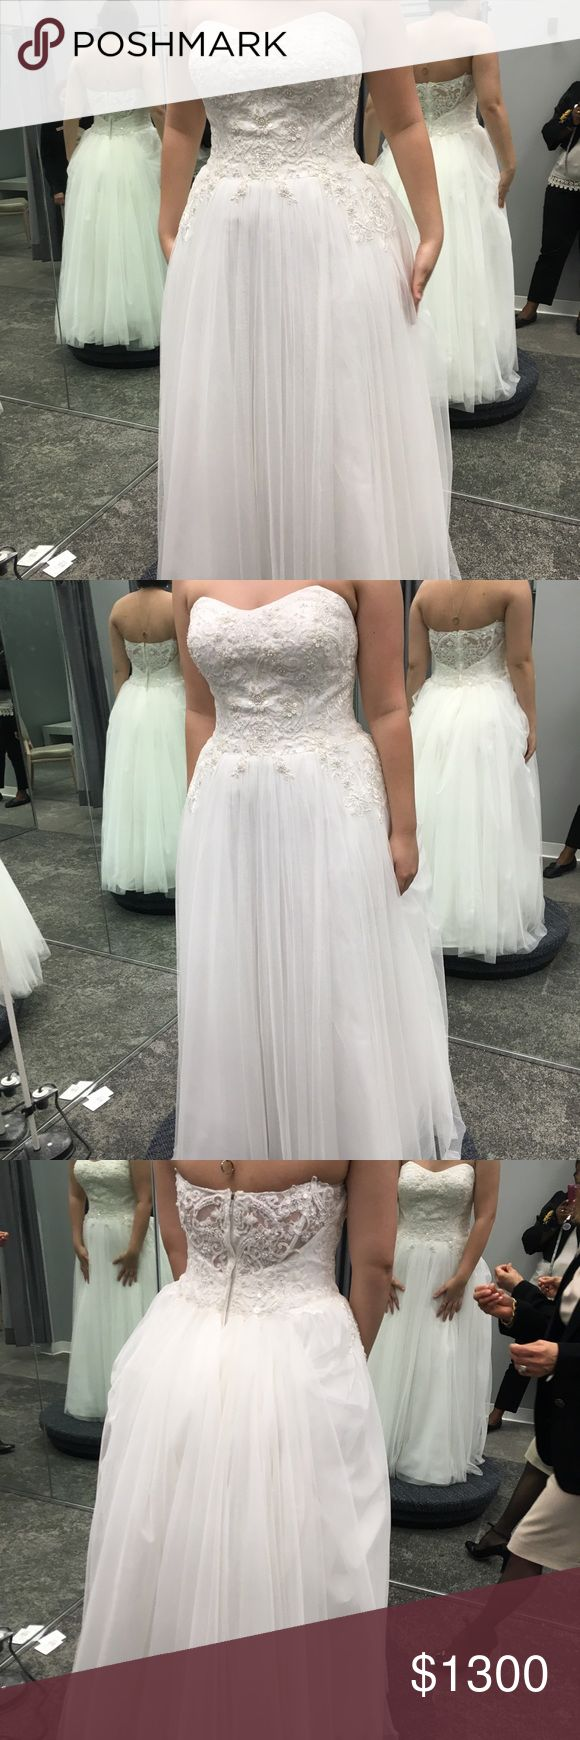 Wedding Dress Davids Bridal NEVER USED wedding dress. Size 14 fits like a 12. Bought in Jan 2017. Has been hanging in Water Proof Garment Bag this whole time. Oleg Cassini Other